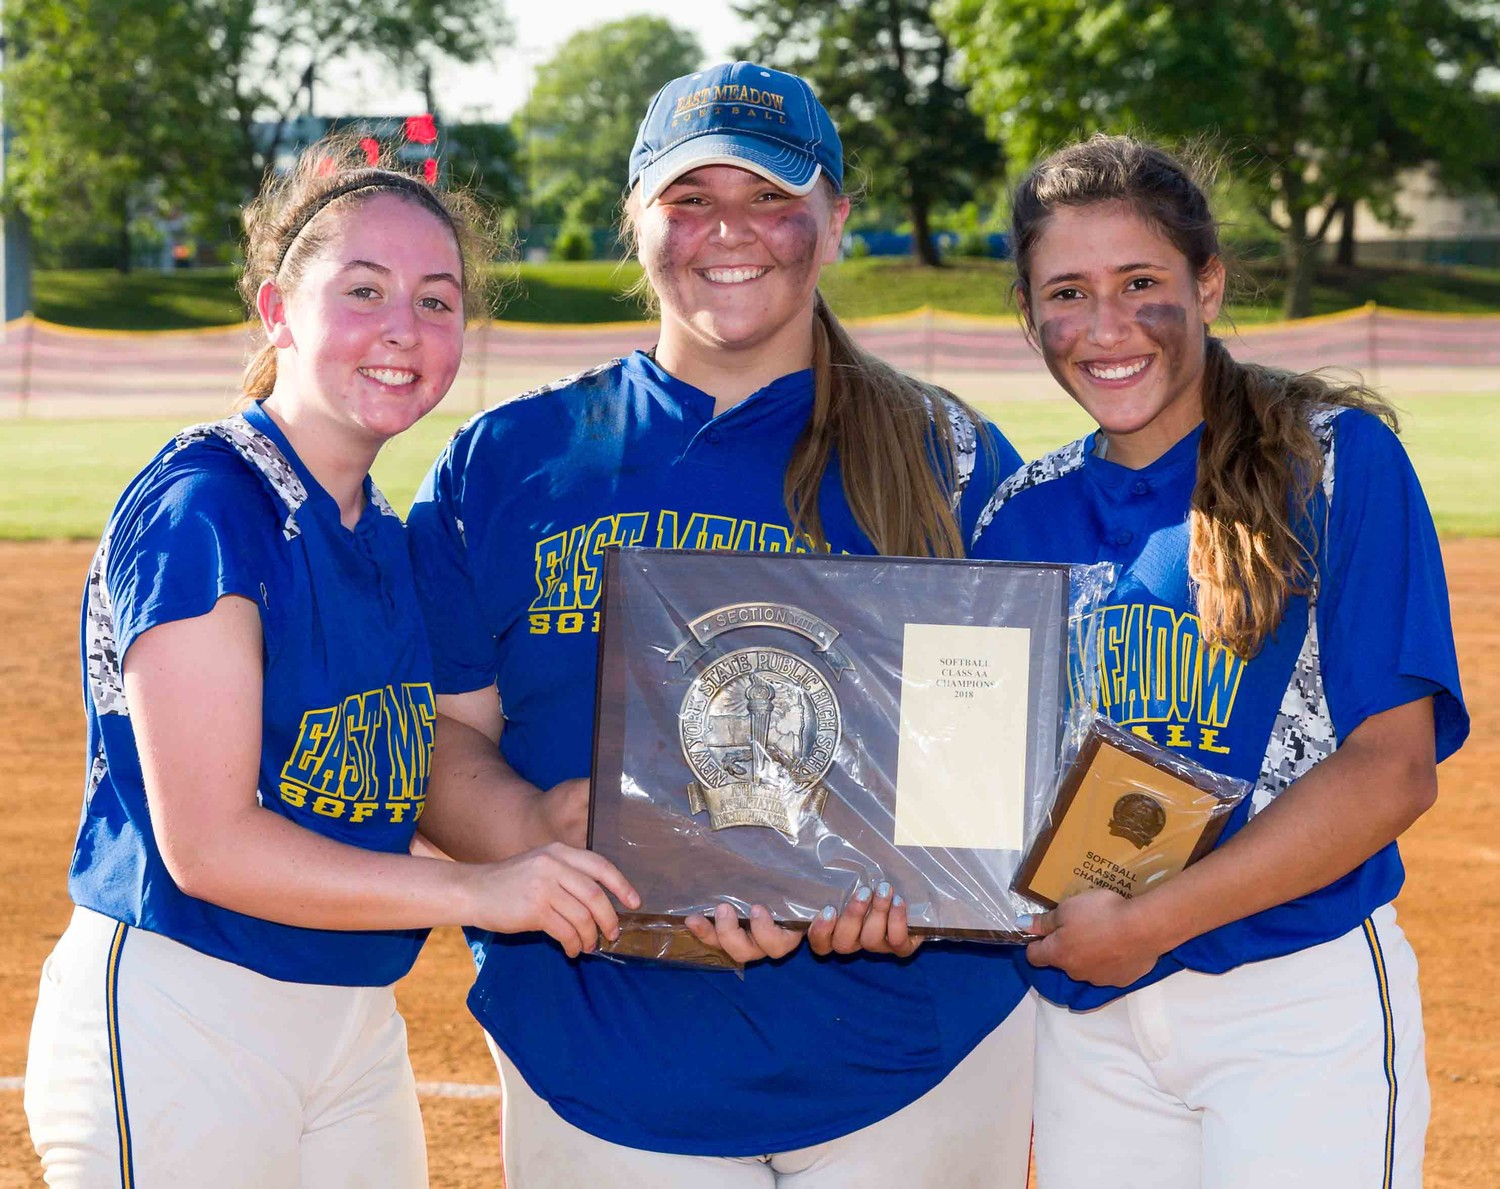 East Meadow senior captains, from left, Sara Polansky, Christina Loeffler and Sam Reyes displayed the county championship hardware after winning a second straight Nassau Class AA title.